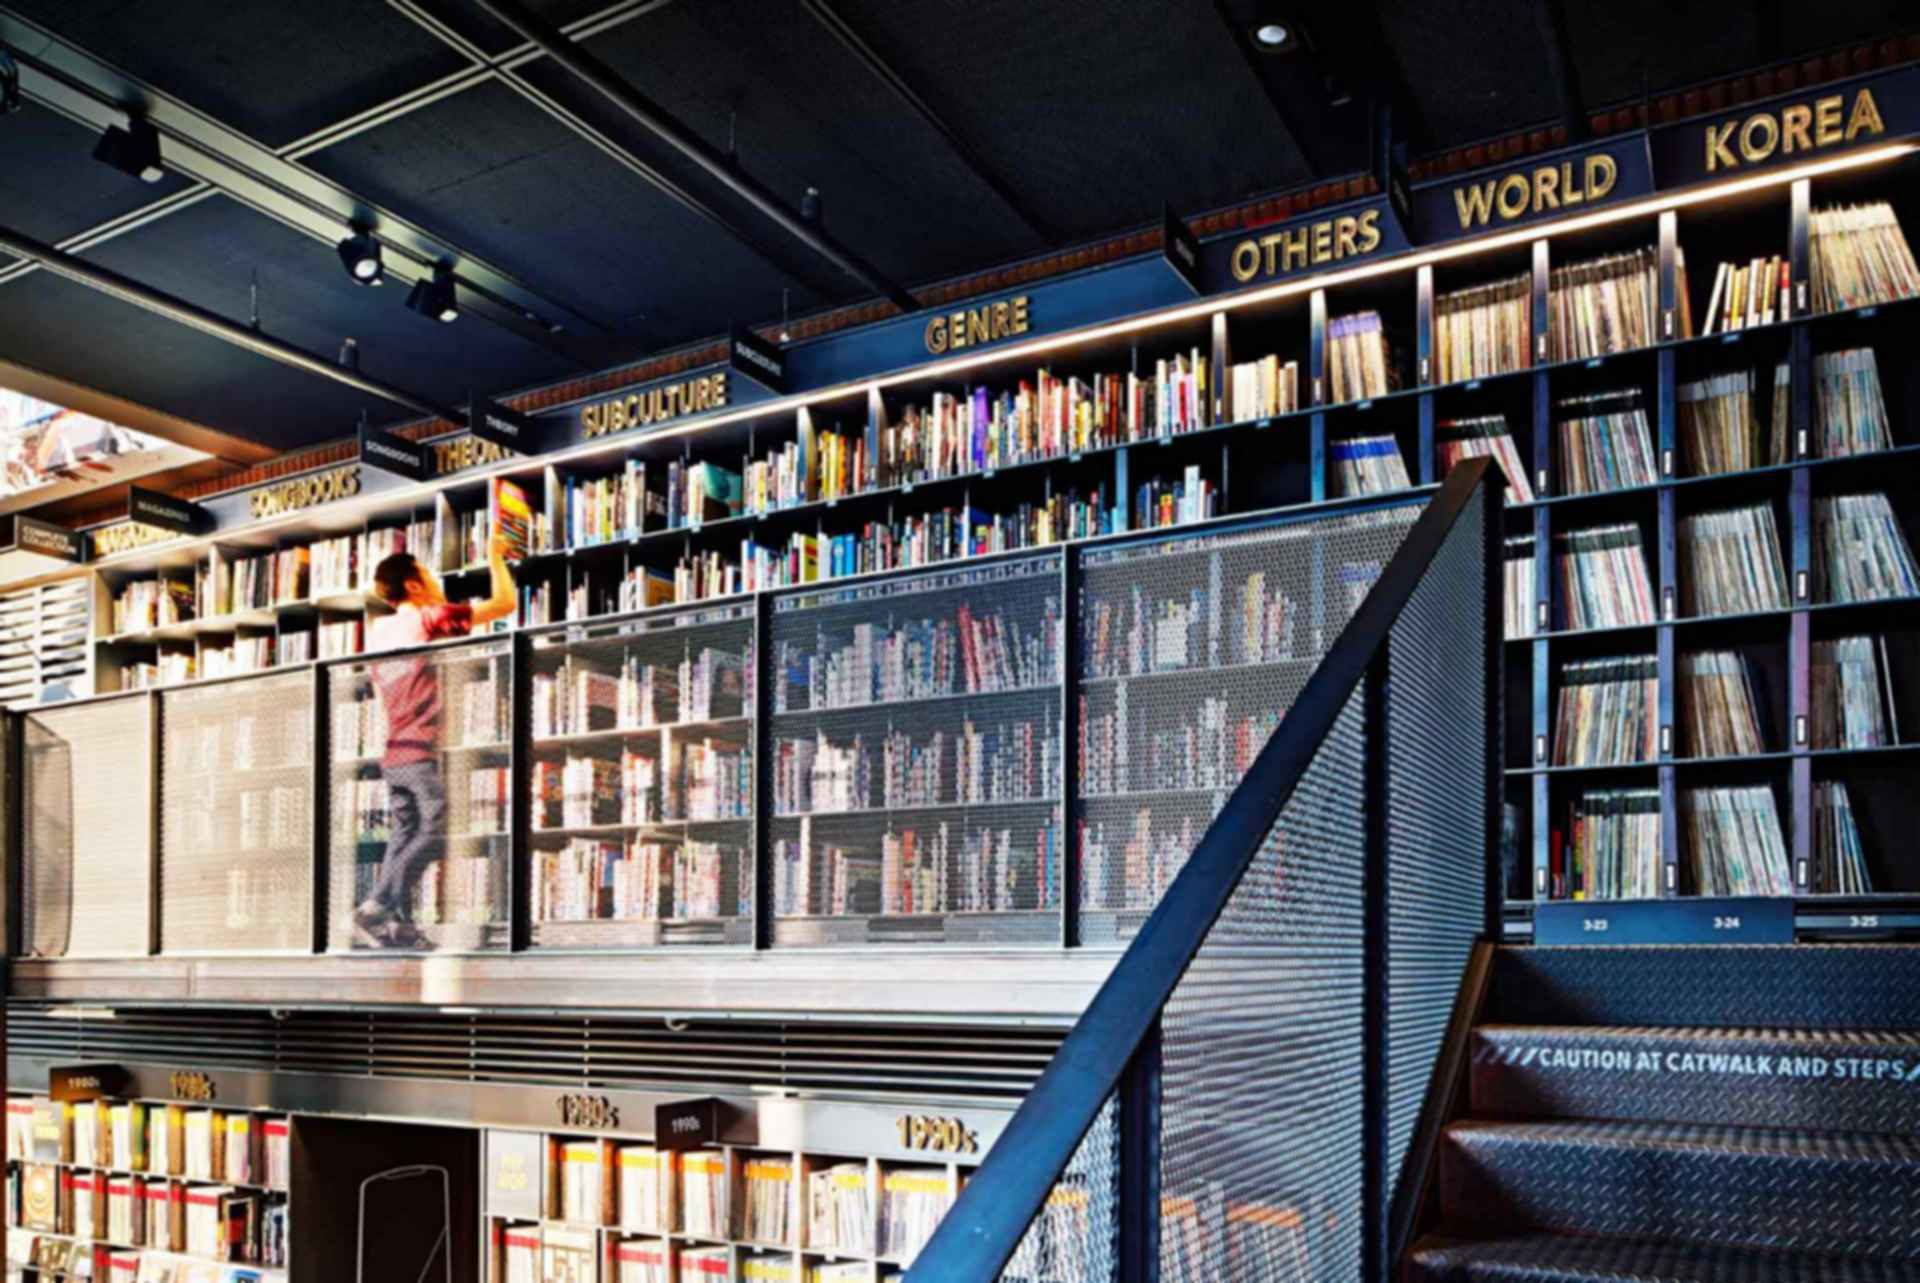 Hyundai Card Music Library Understage - interior library